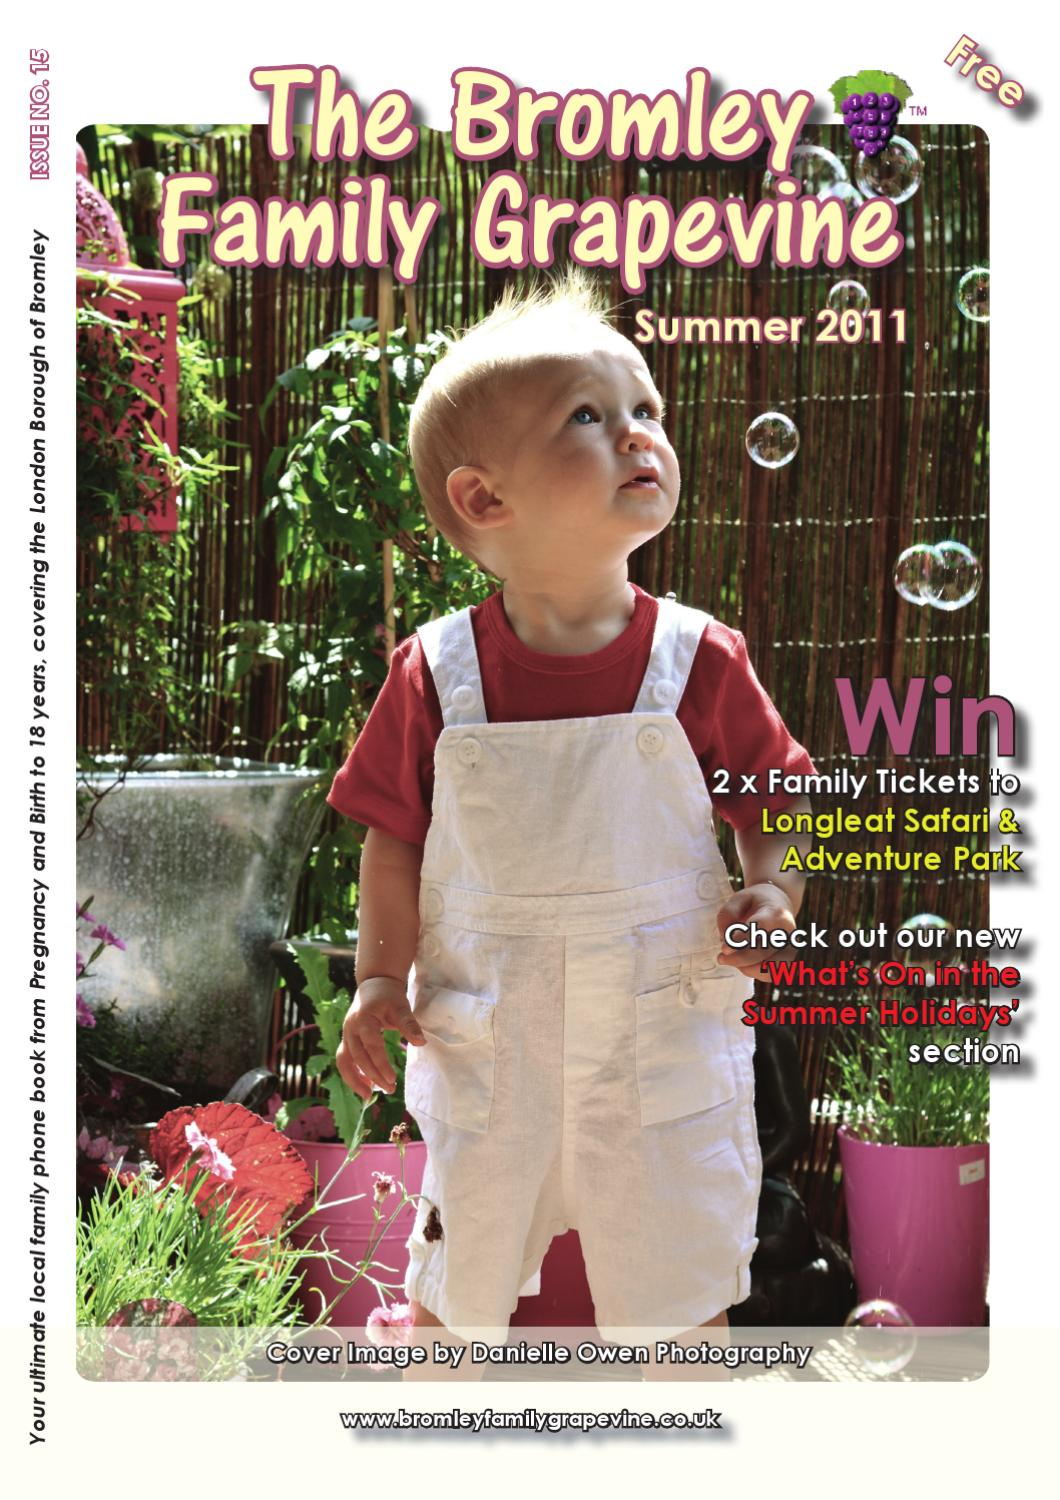 The Bromley Family Grapevine By Natasha Hutchings Issuu